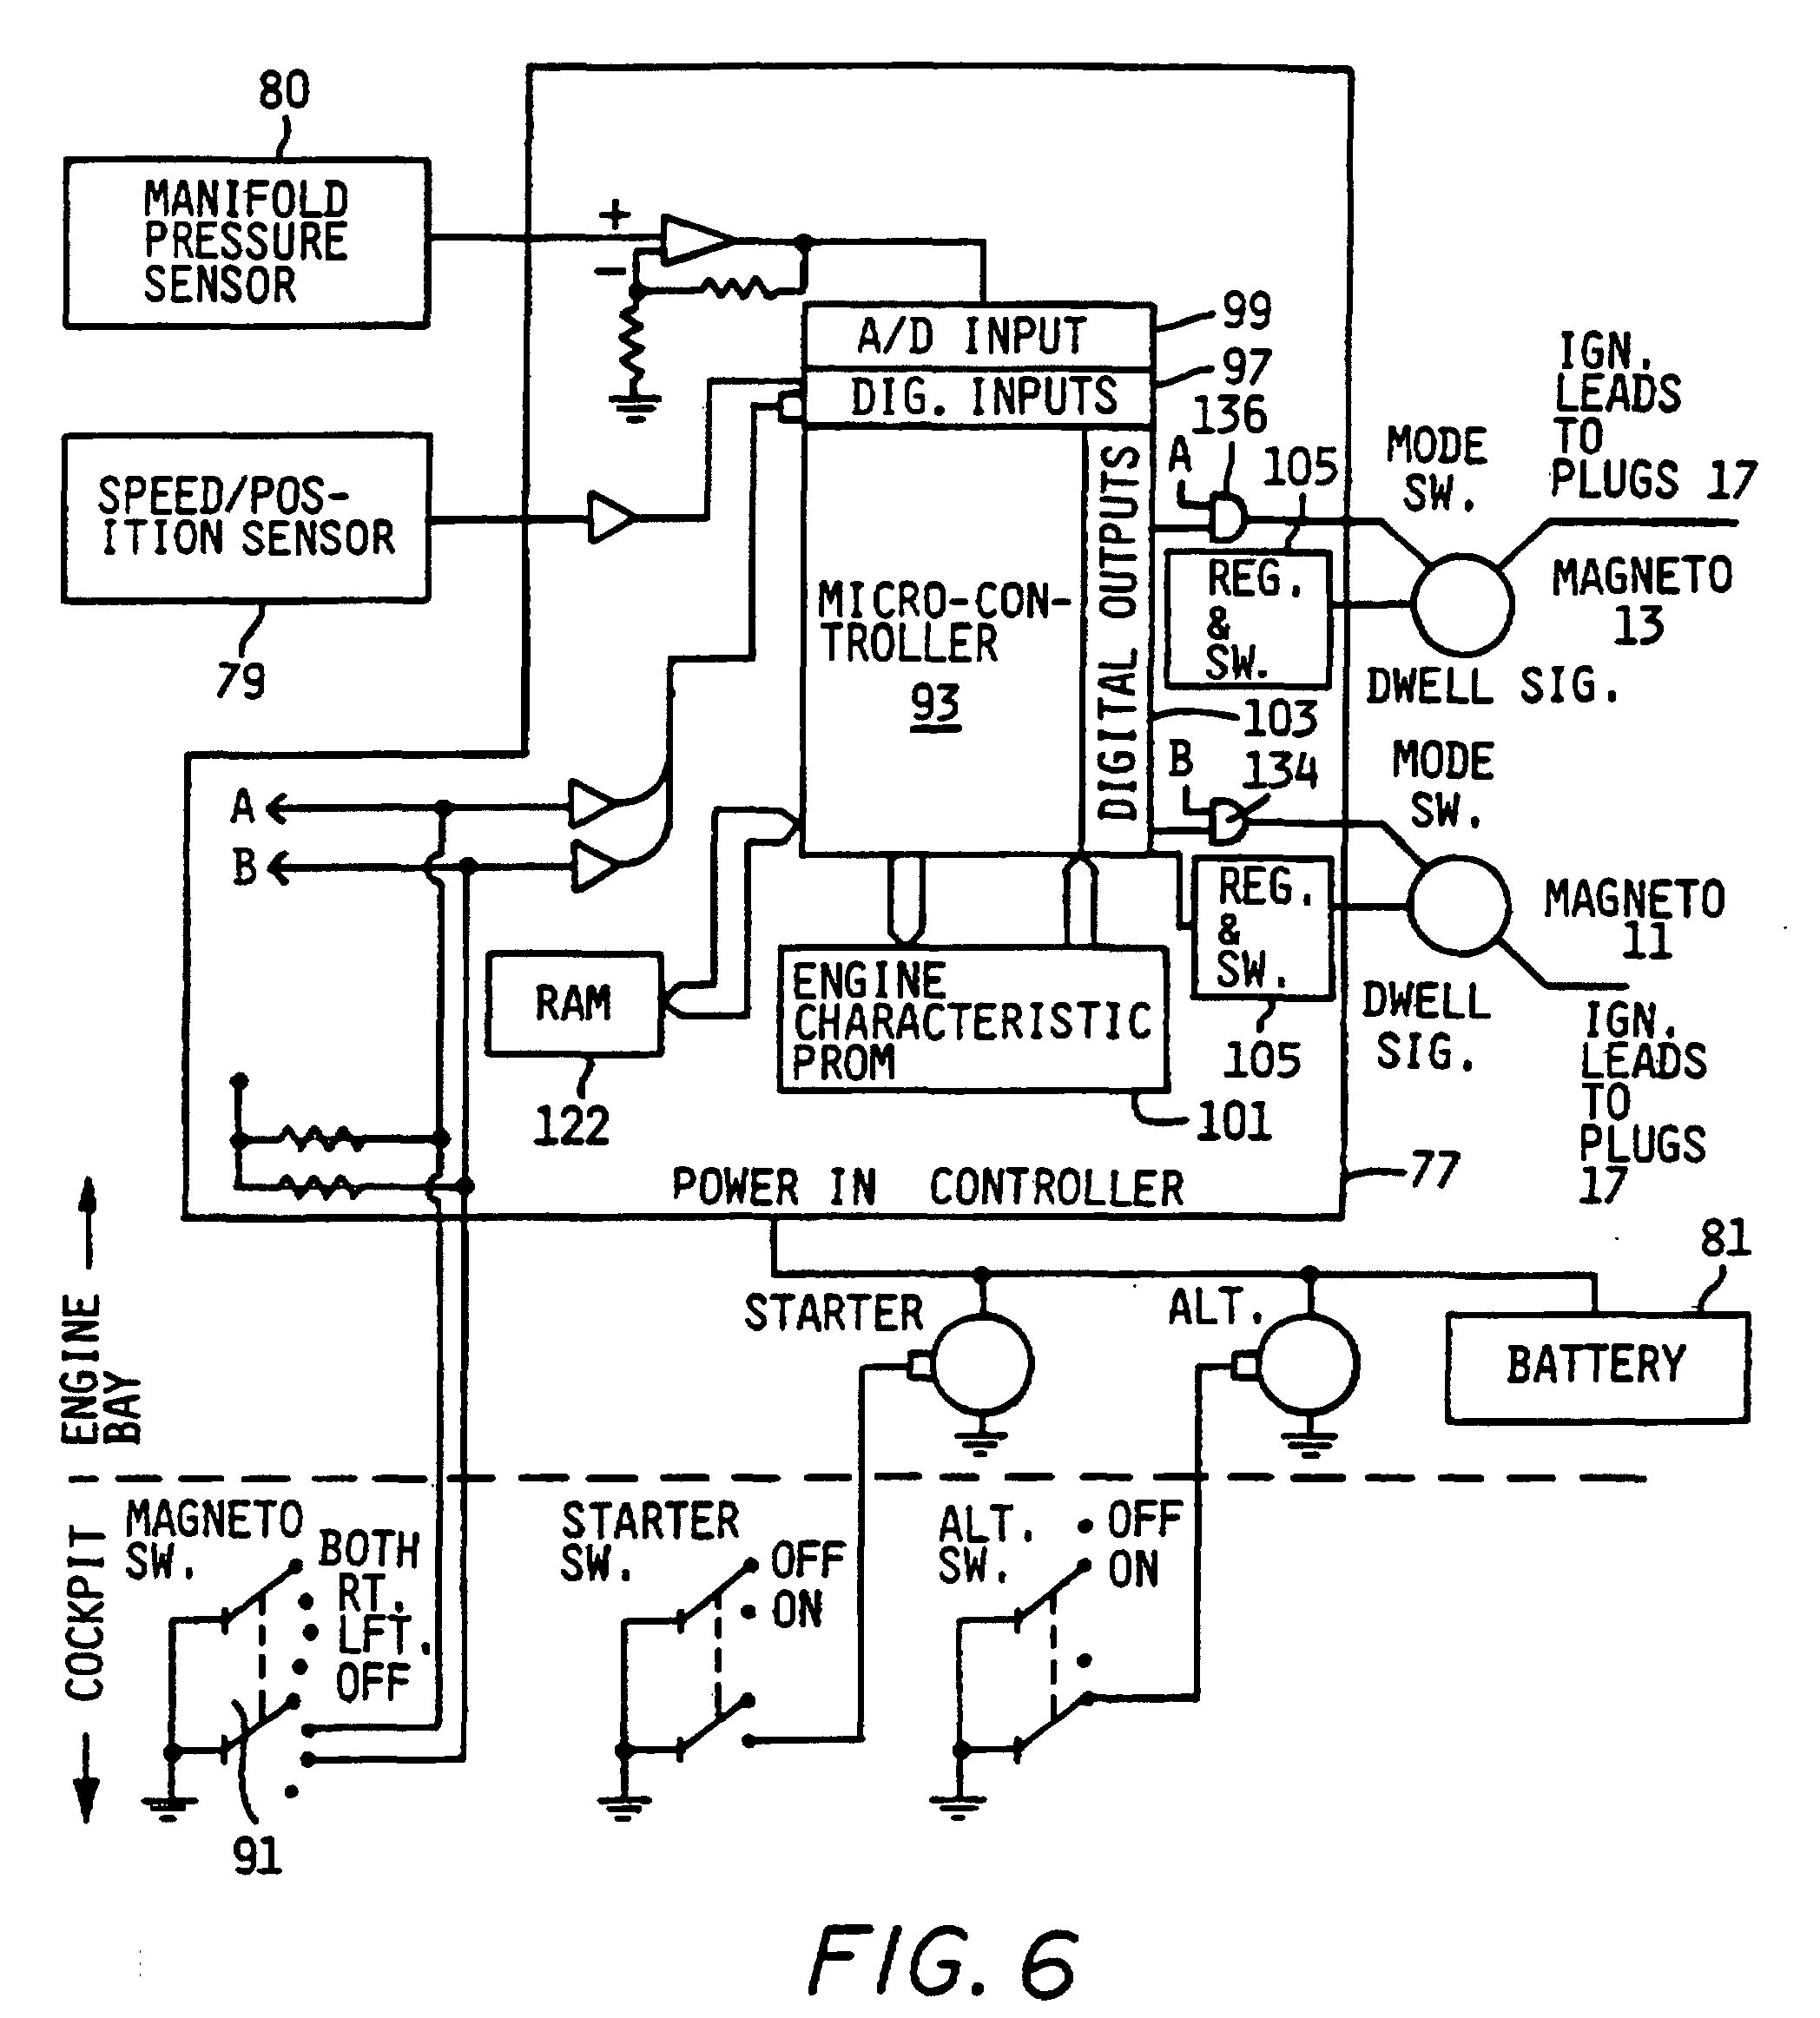 Small Engine Magneto Wiring Diagram Not Lossing Ignition System Aircraft Mag O Coil Test Resistance Mdule